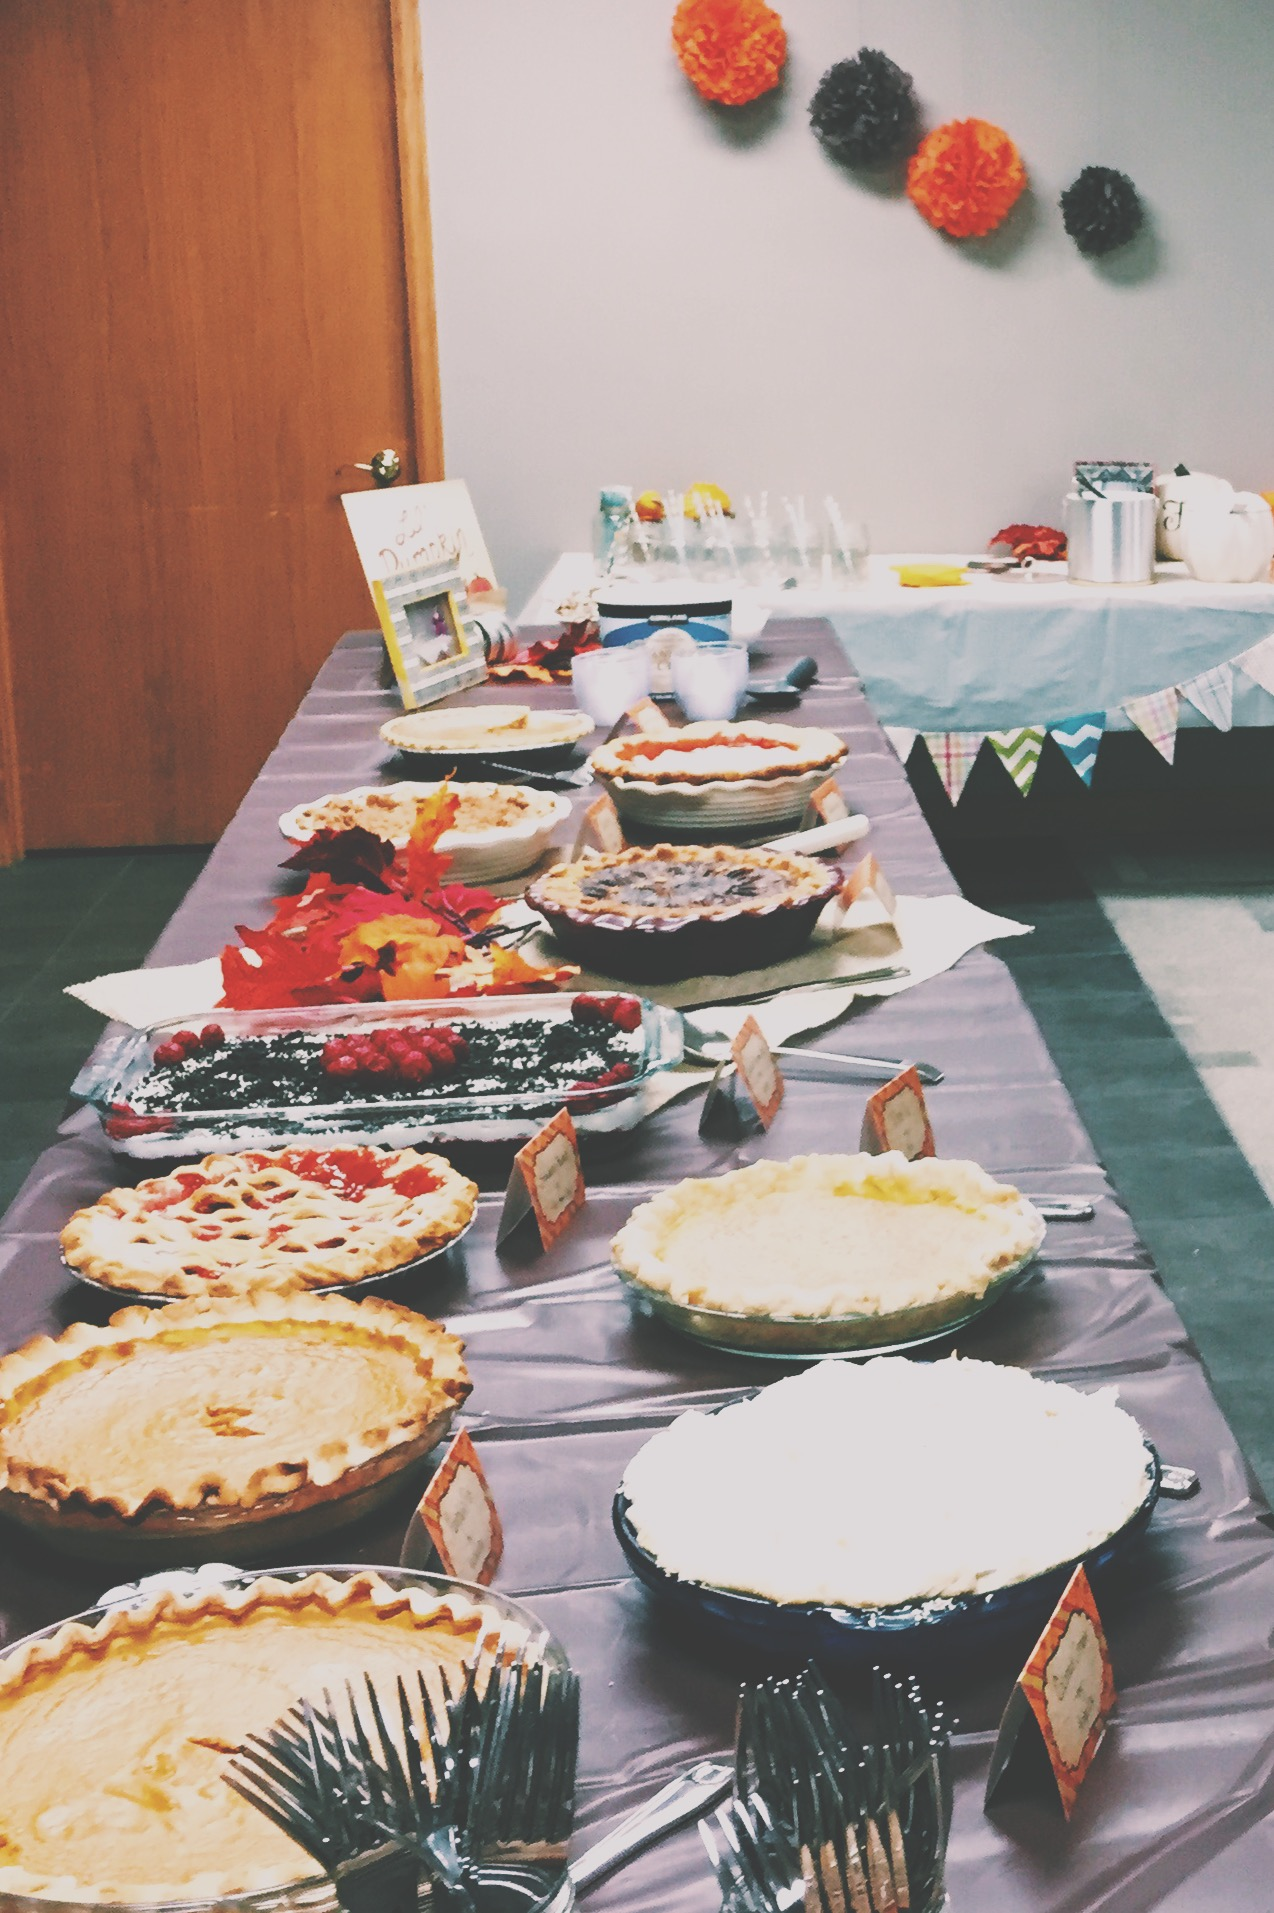 Lil Pumpkin baby shower theme- Pies and fall drinks | finicky designs